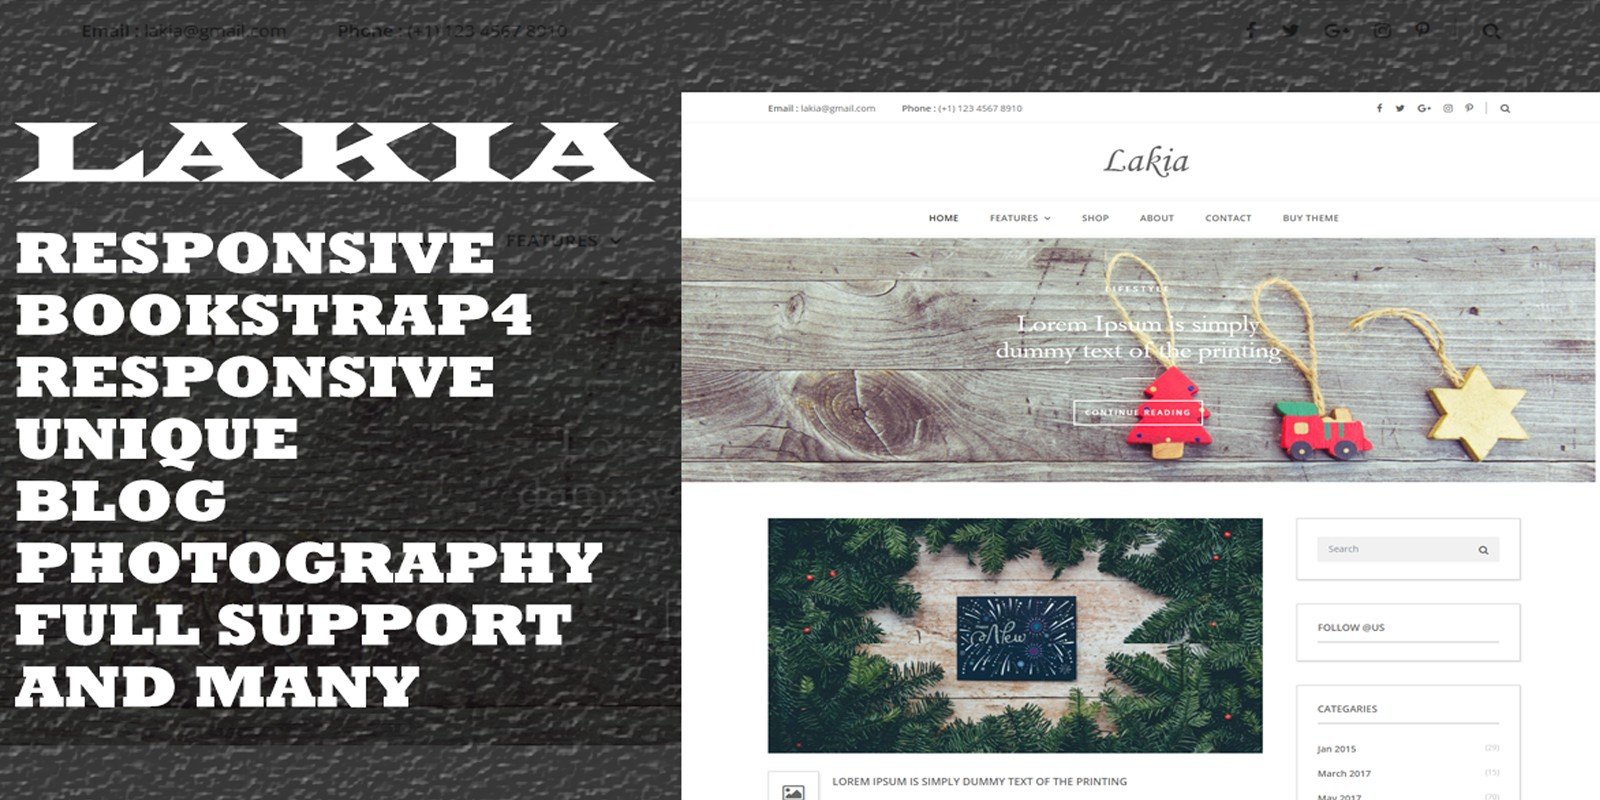 Lakia - HTML Blog Template - HTML Blog Website Templates | Codester